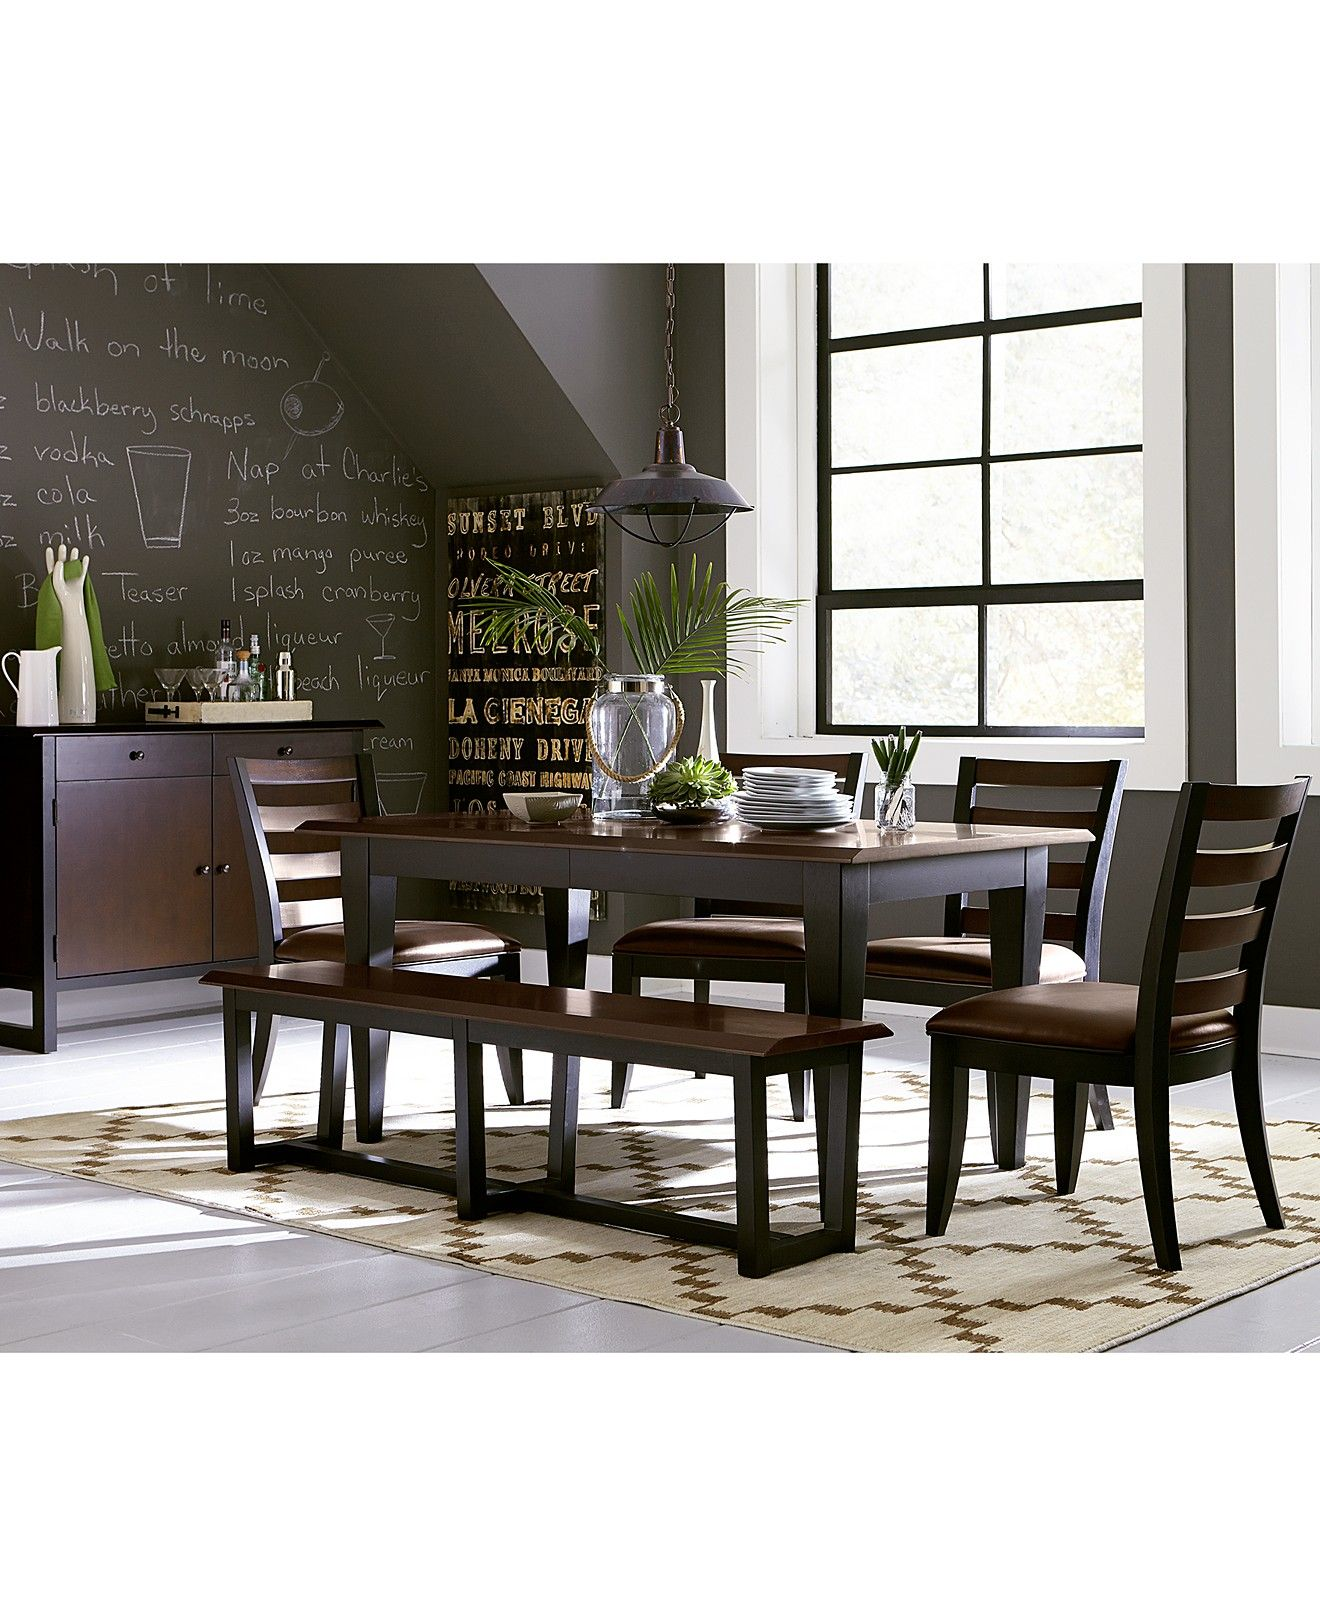 west 4th dining room furniture collection - dining room